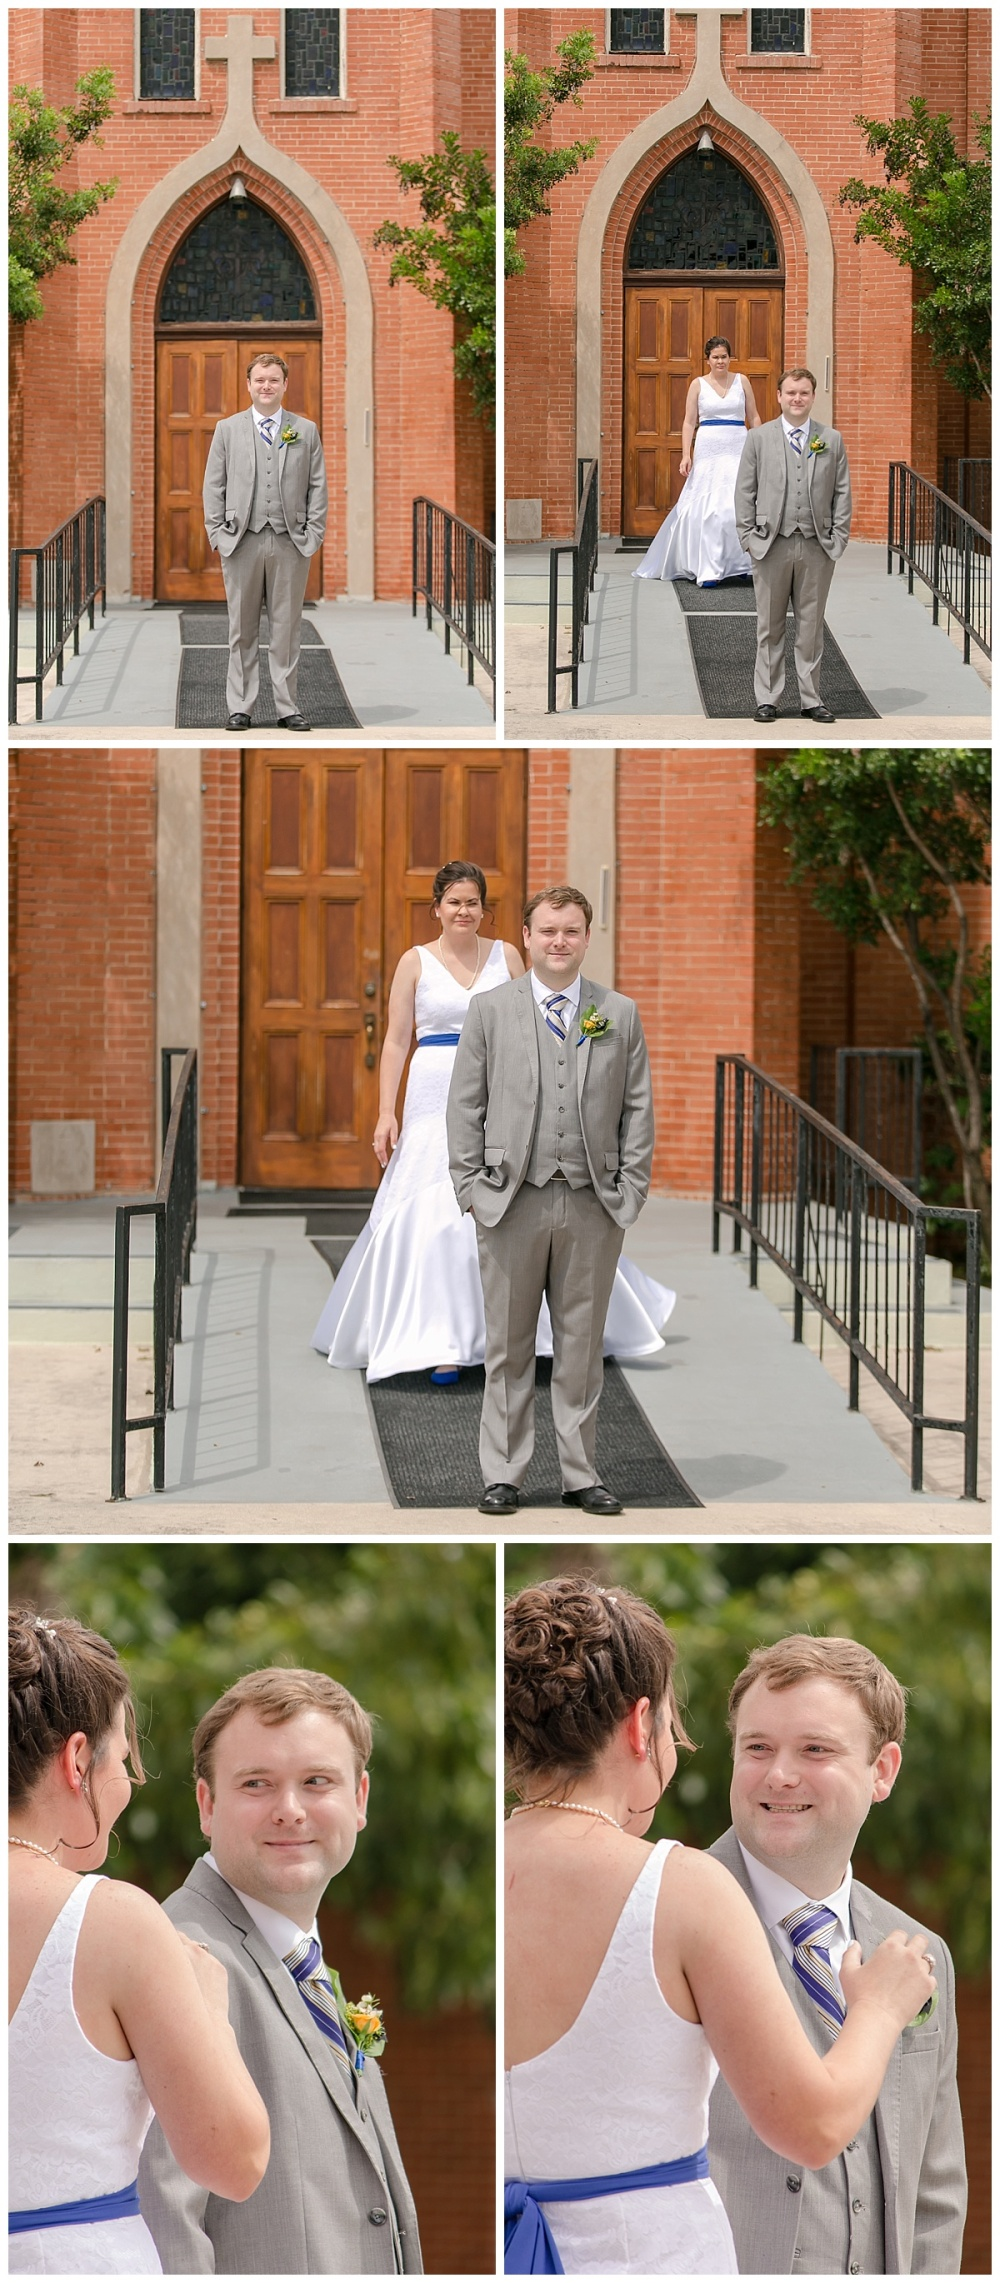 Texas-Wedding-Photographer-La-Coste-Our-Lady-Of-Grace-Church-Bride-Groom-Lego-Theme-Carly-Barton-Photography_0020.jpg